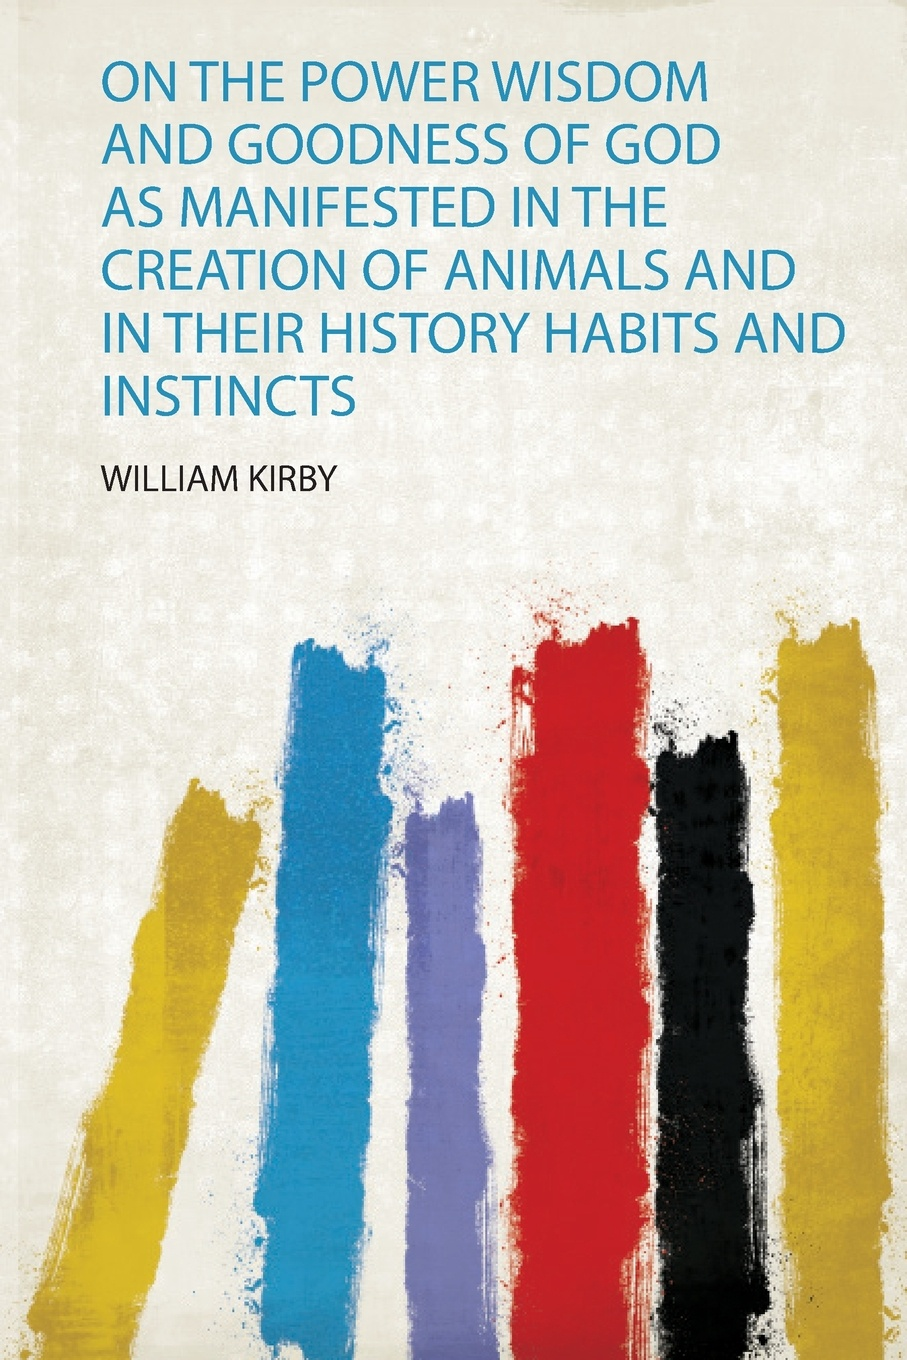 On the Power Wisdom and Goodness of God as Manifested in the Creation of Animals and in Their History Habits and Instincts william kirby on the power wisdom and goodness of god as manifested in the creation of animals and in their history habits and instincts volume 1